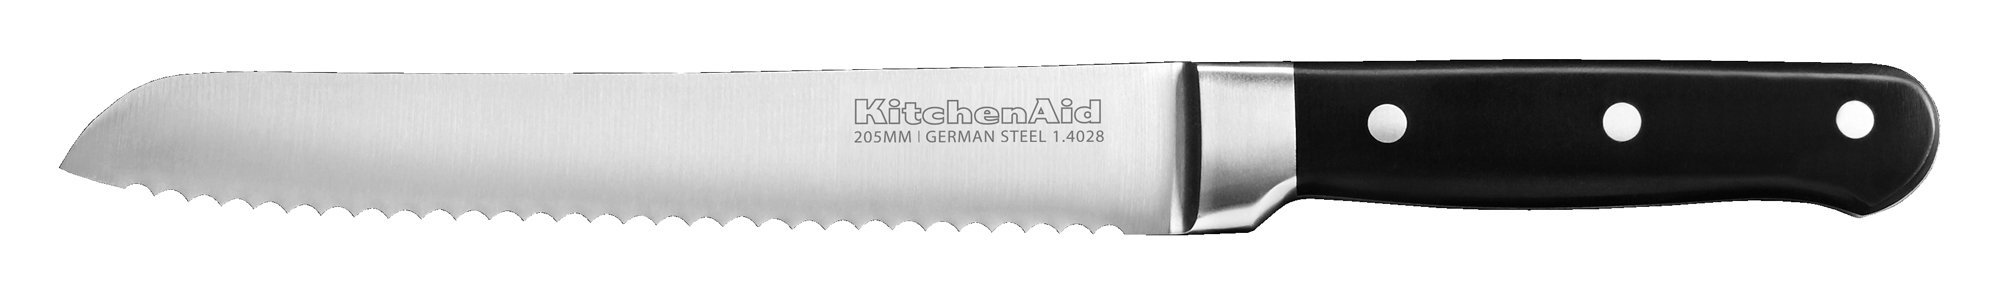 """KitchenAid KKFTR8BROB Classic Forged Series Triple Rivet Serrated Bread Knife, Onyx Black, 8"""" 1 High Carbon German 1.4028 Stainless Steel, giving them an exceptional and enduring razor sharp edge Our cutlery is tested to withstand the toughest dishwasher cycles Ergonomically engineered with full tang and bolster, our handles are designed for ultimate comfort and easy handle control"""